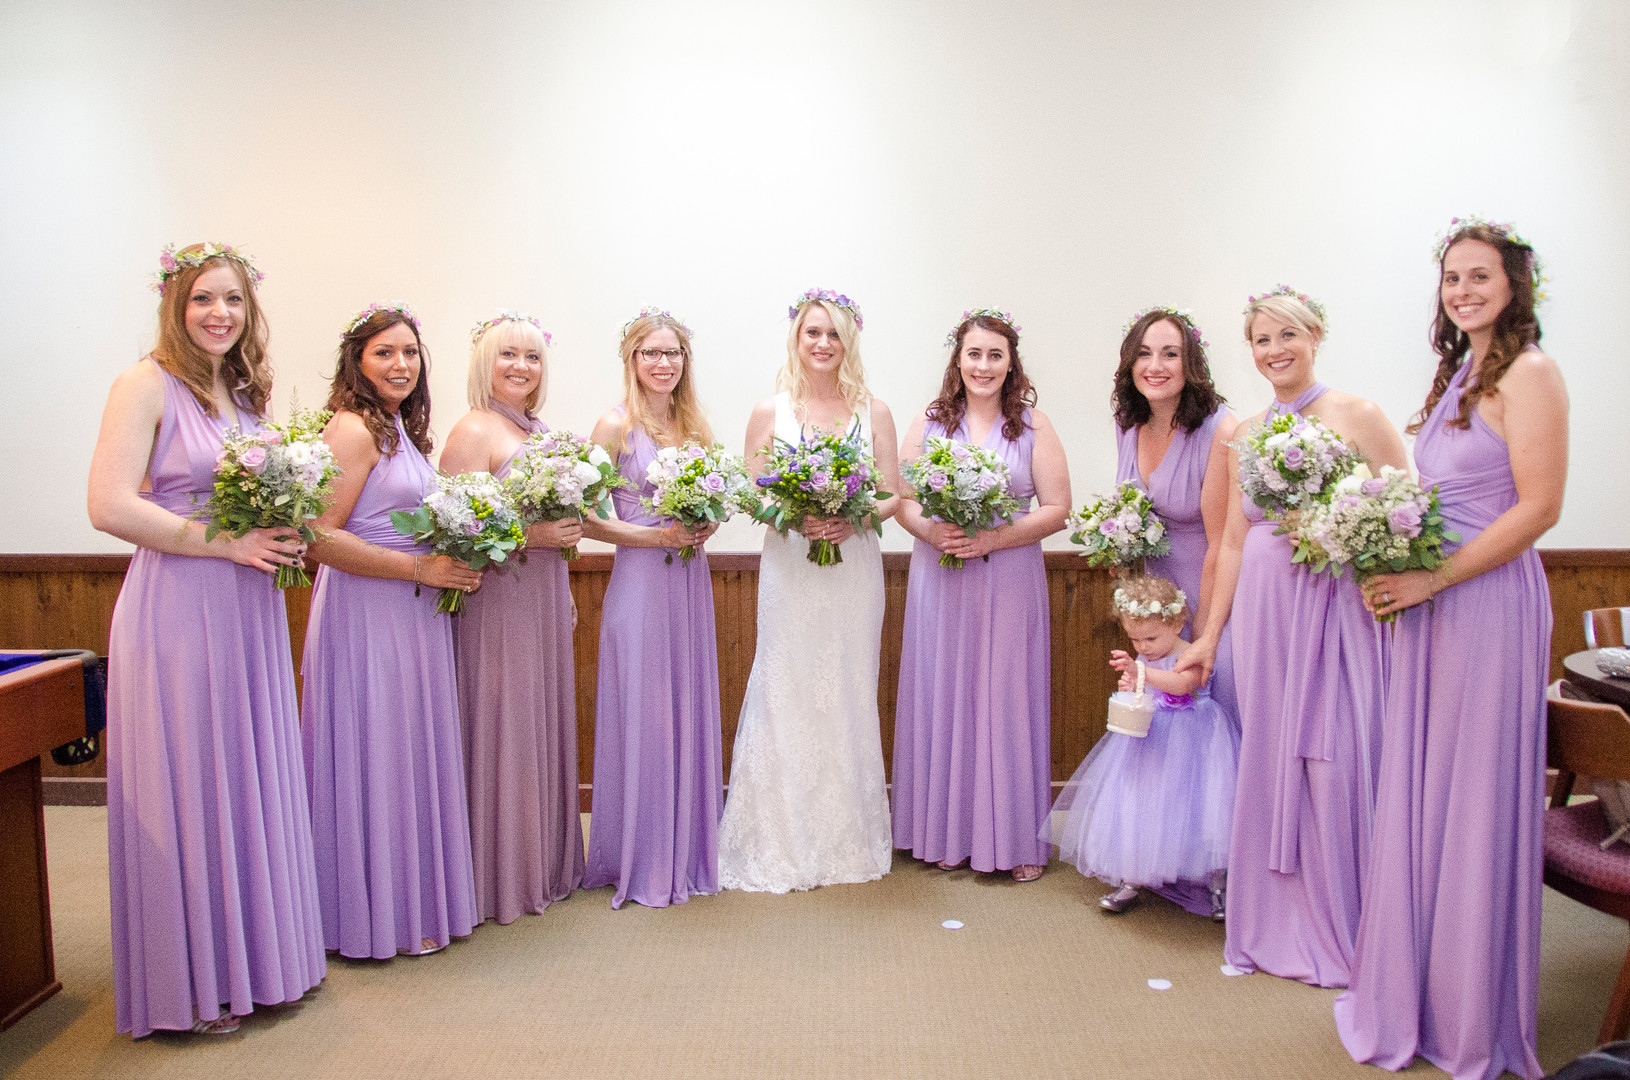 Lavender and purple bouquets